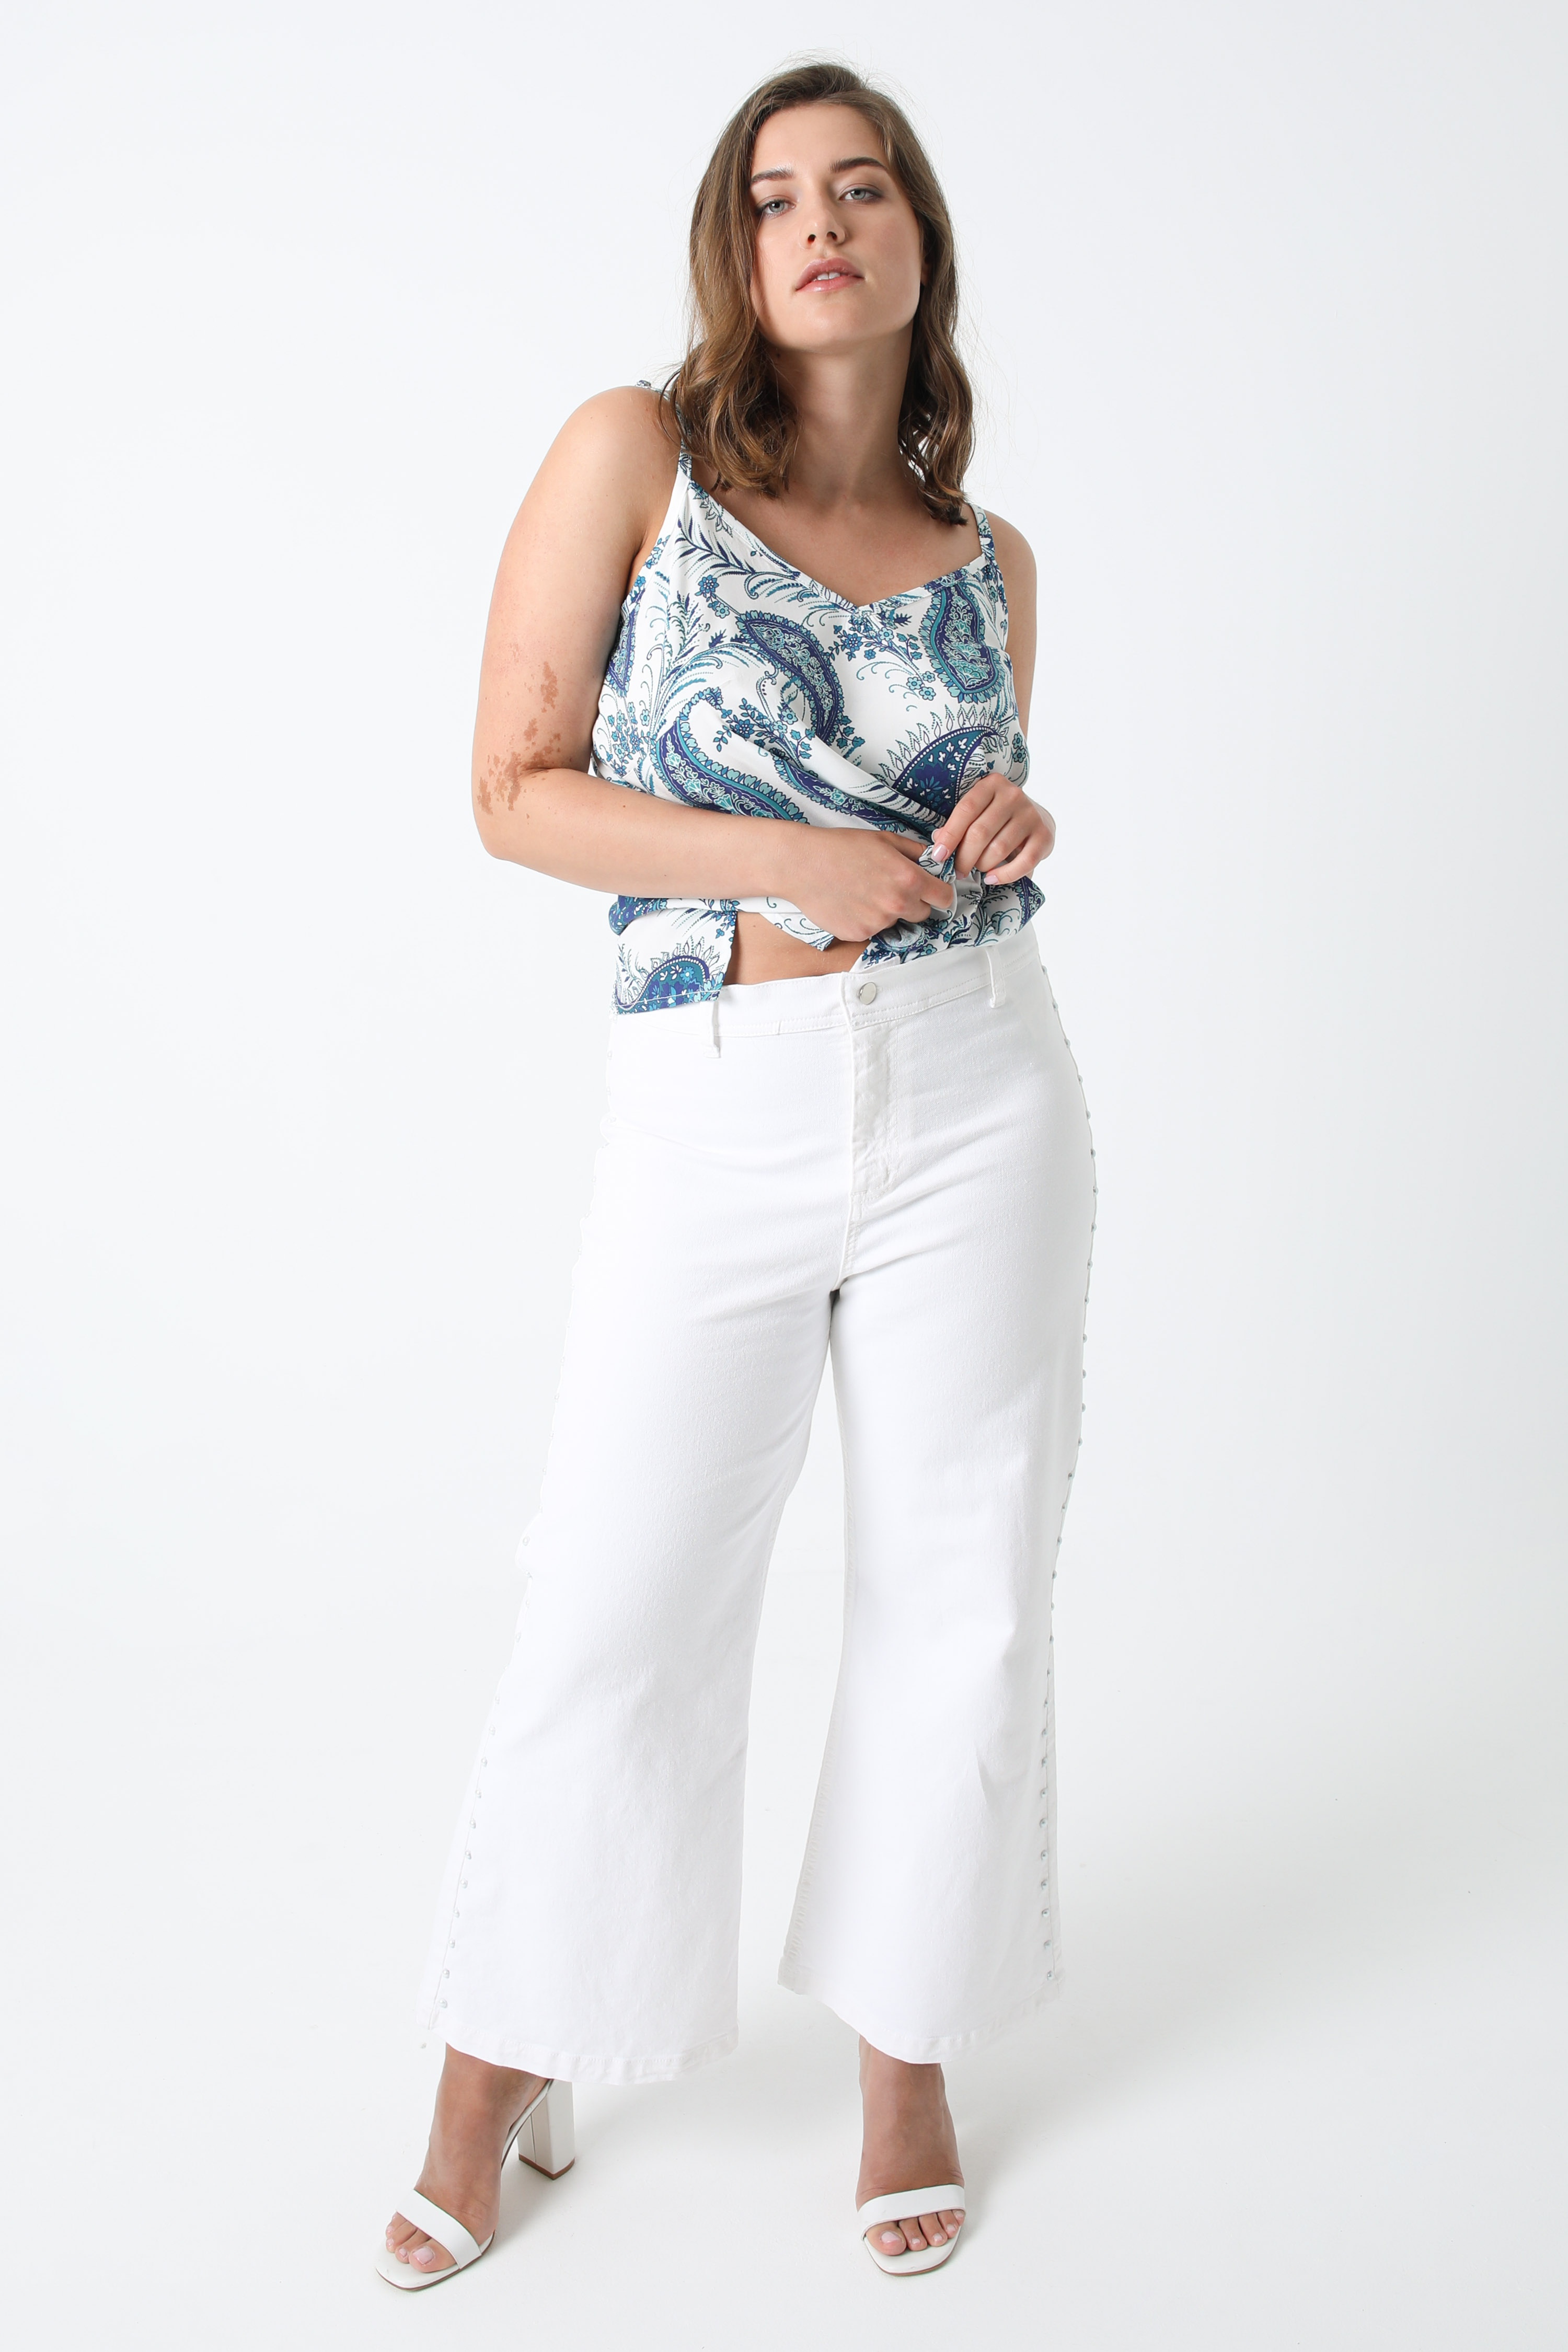 White jeans pants with pearls